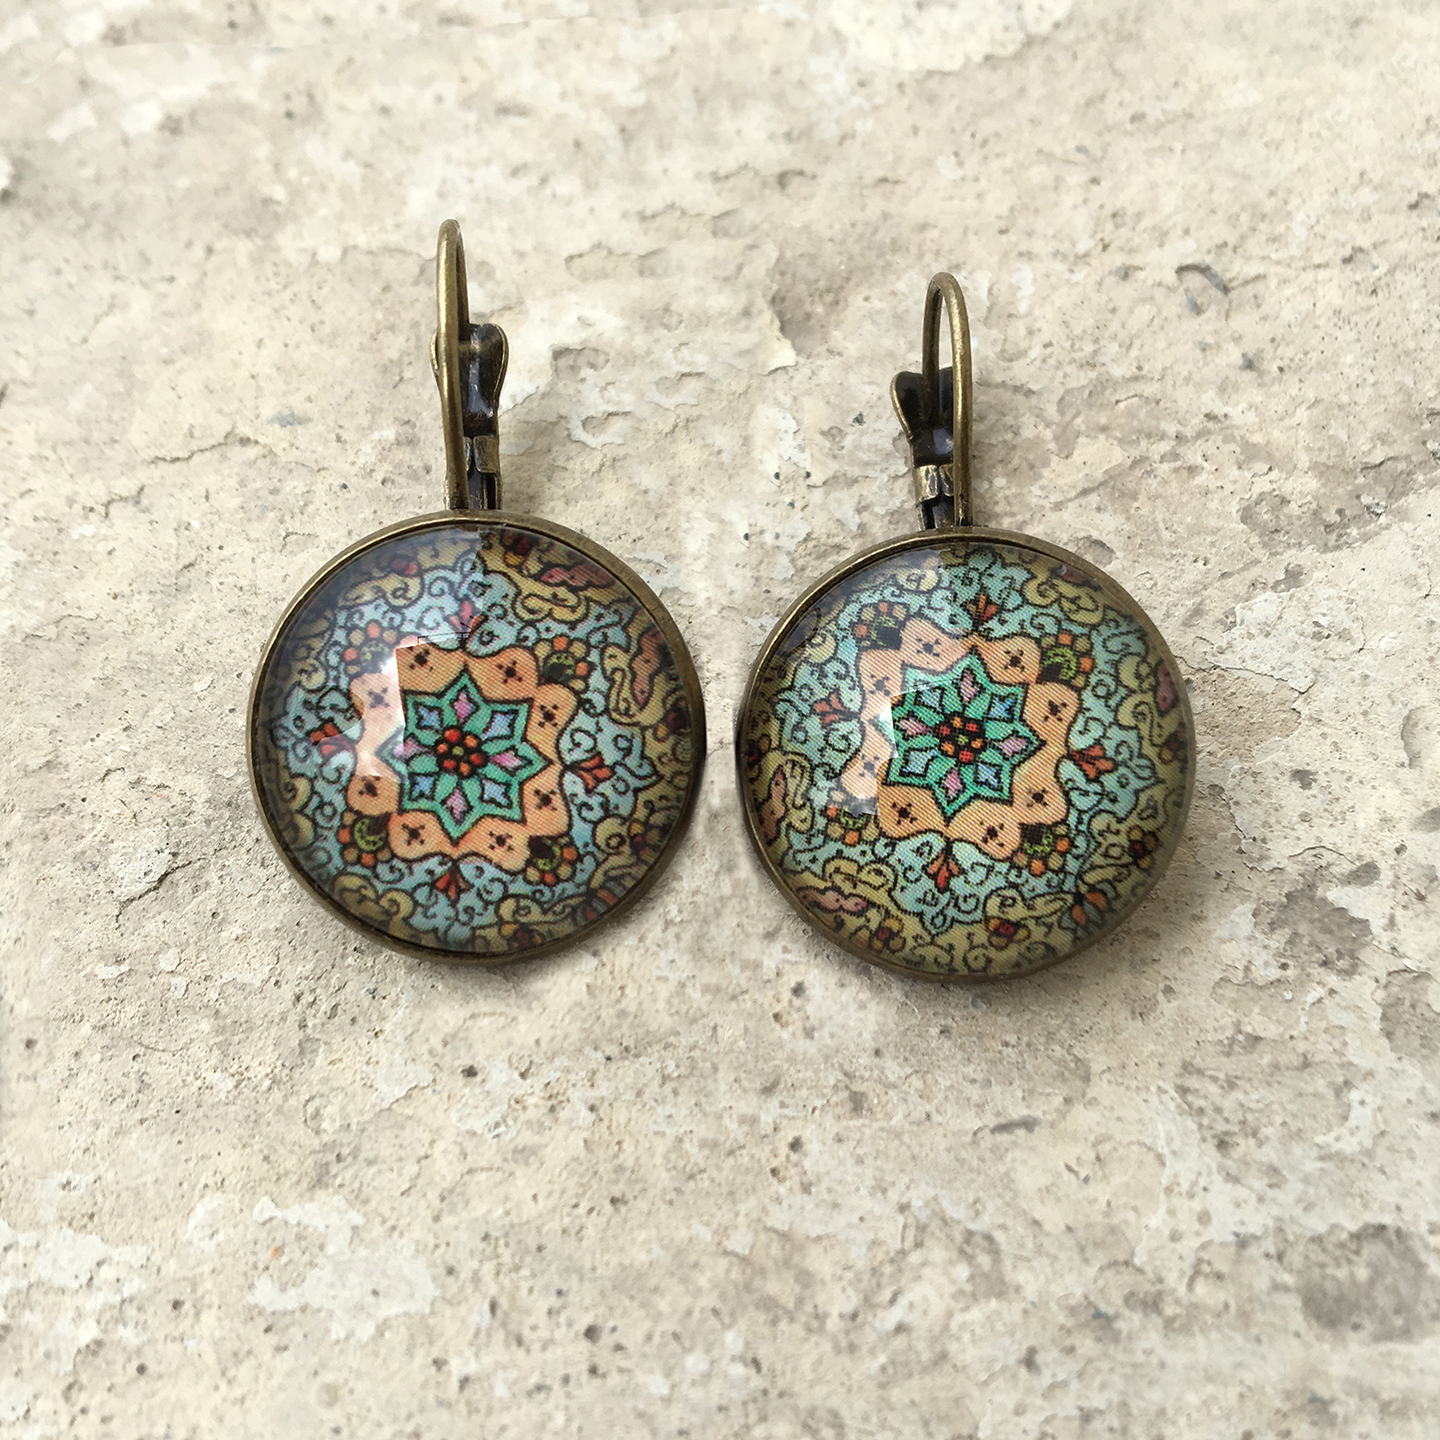 CLIP EARRINGS 18 MM - Detail Painted Box Kashmiri Paper Mache